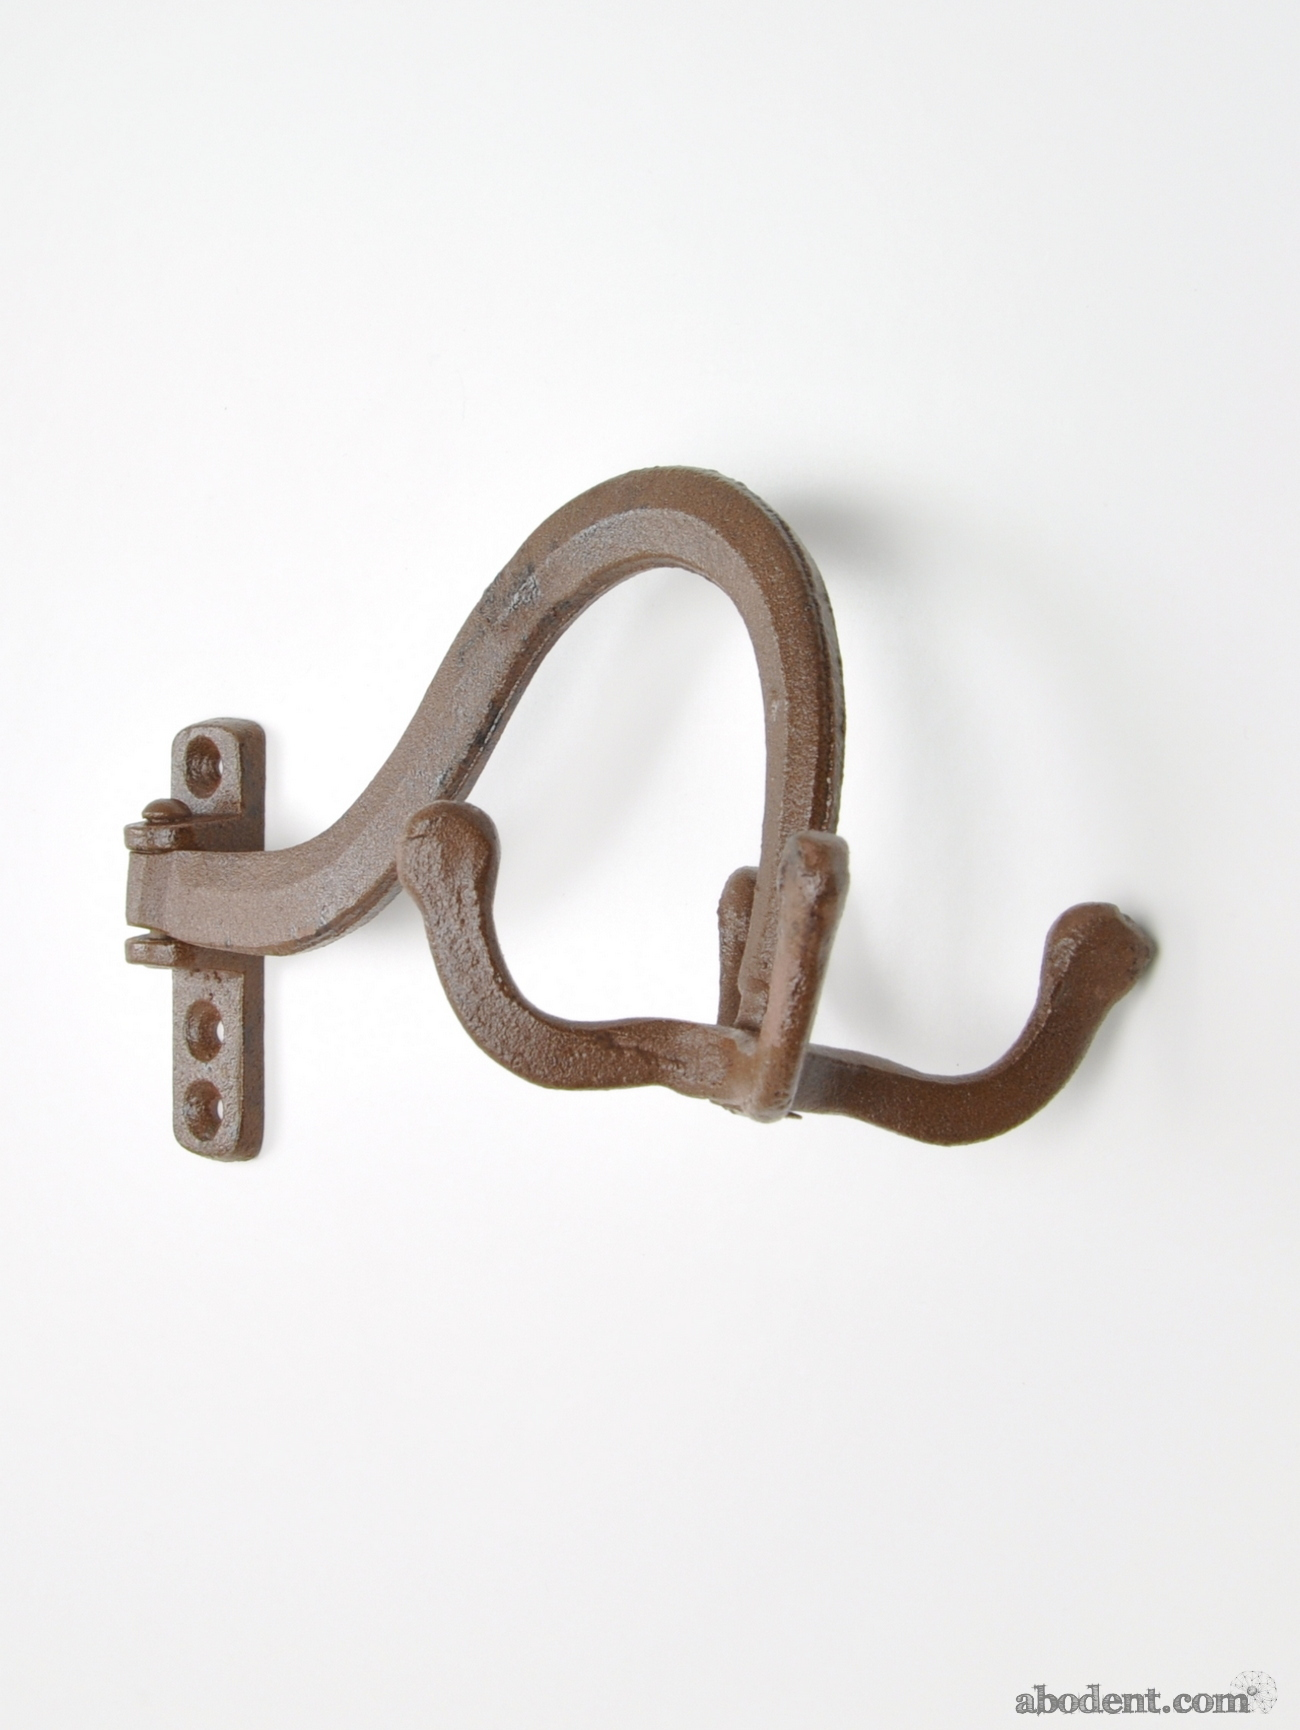 Unusual Coat Hooks Unique Coat Hook Spinning Coat Hook Carouse Hook